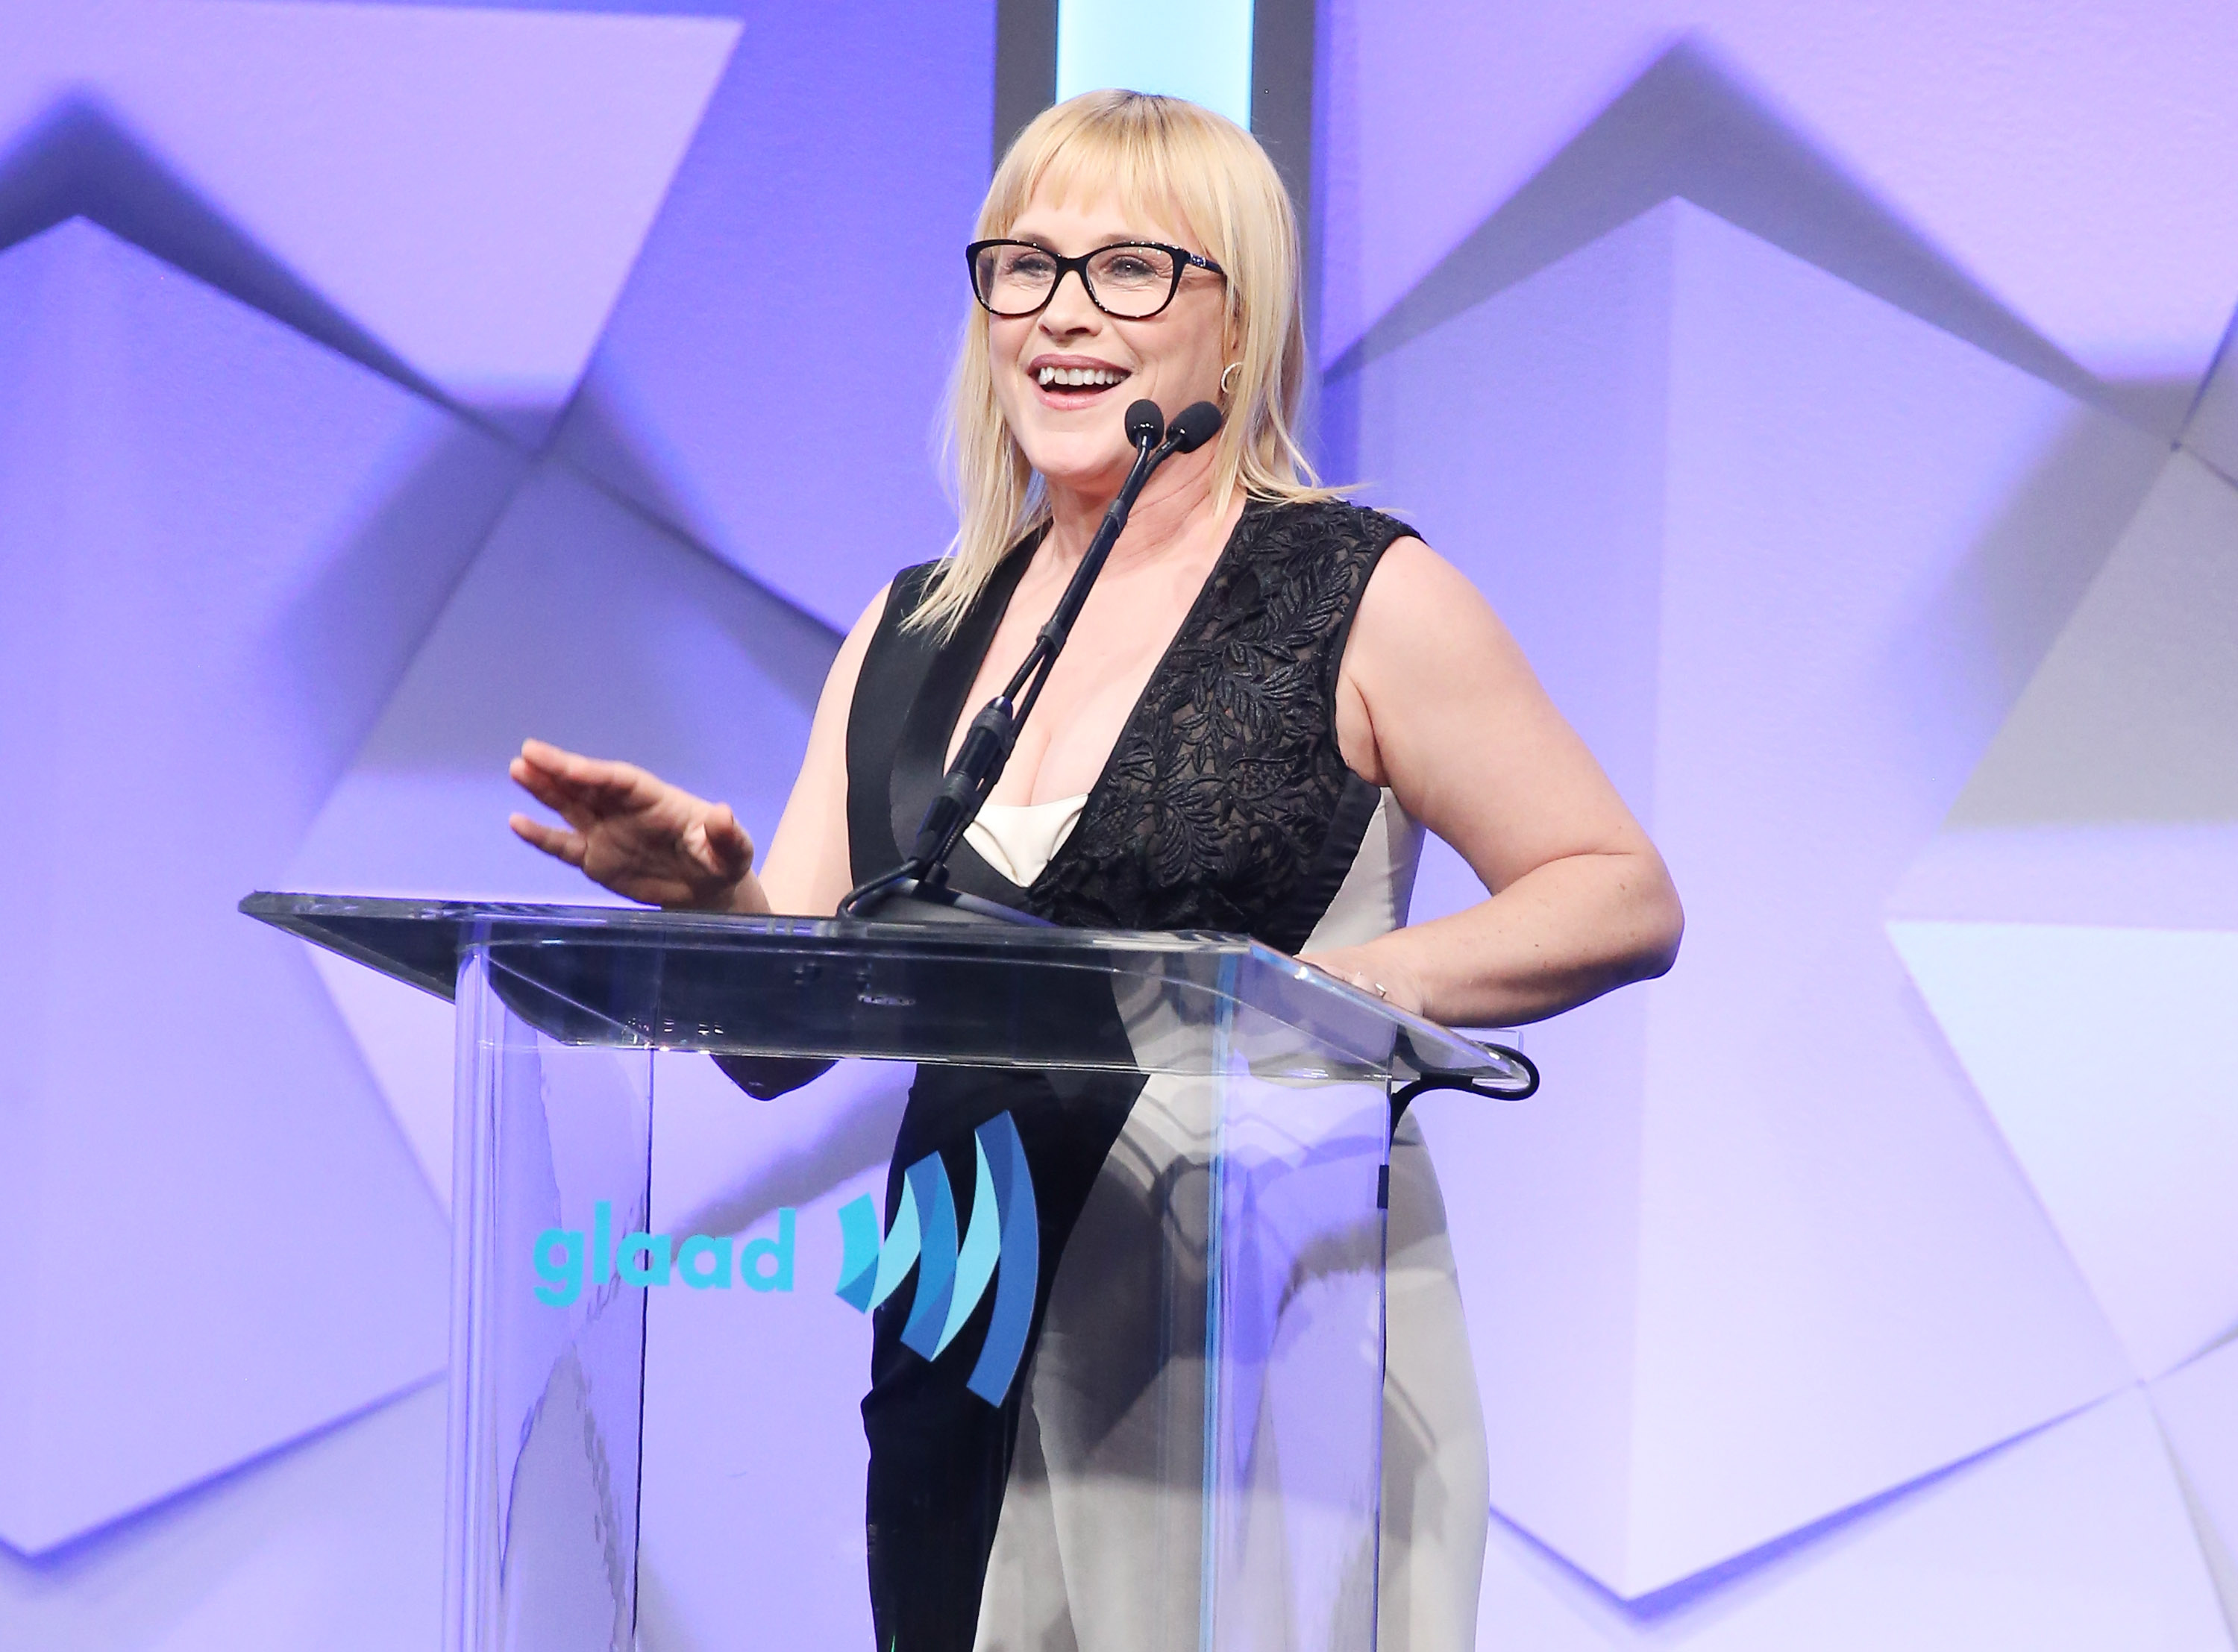 Patricia Arquette speaks onstage during the 27th Annual GLAAD Media Awards held at The Beverly Hilton Hotel on April 2, 2016 in Beverly Hills, California.